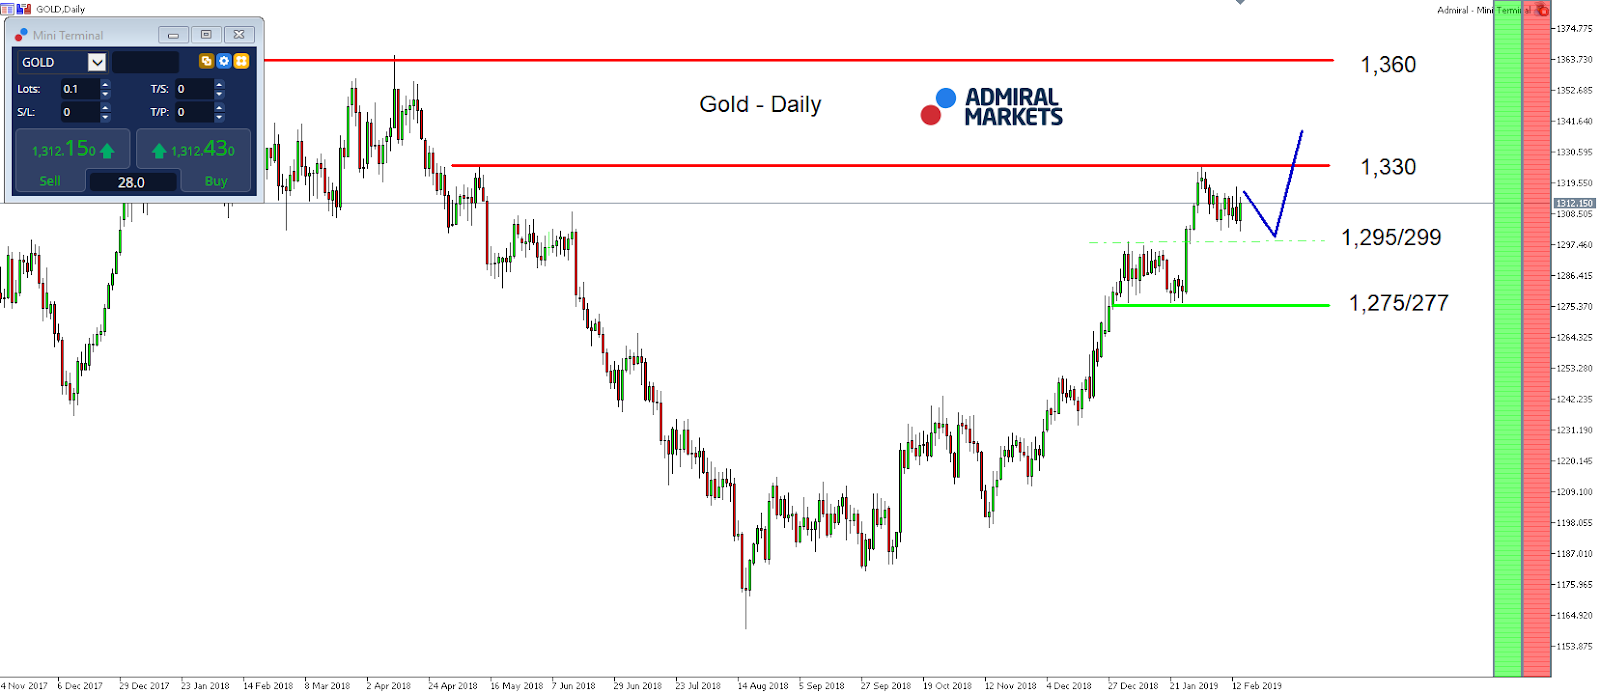 Gold daily chart performance